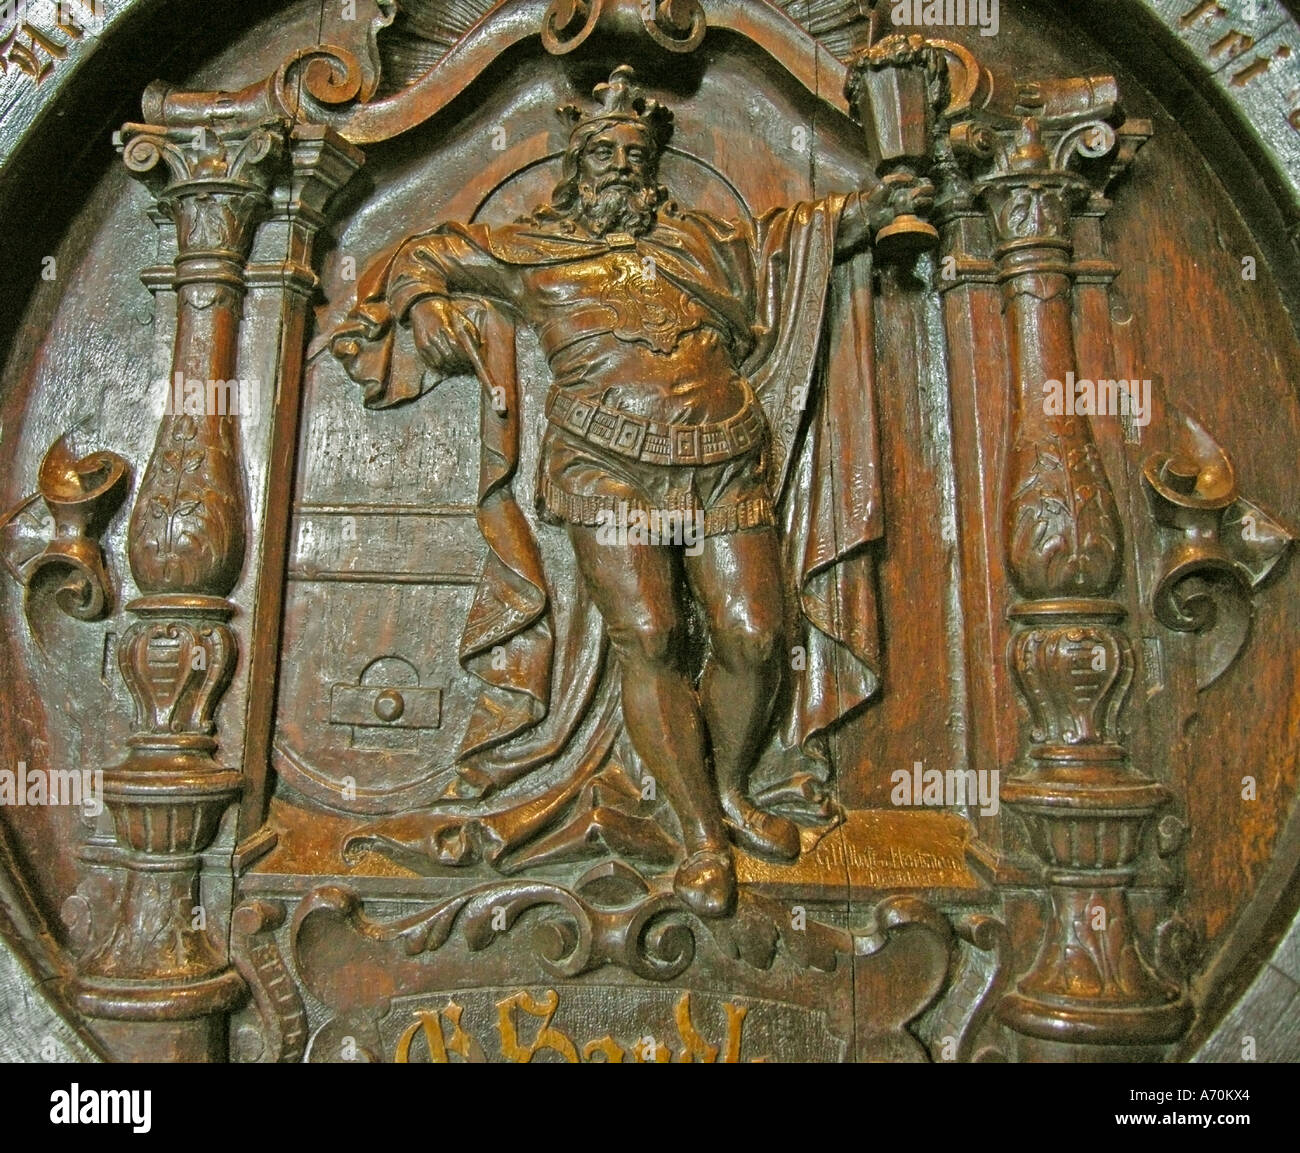 Artistic carvings on old wooden barrel in bavarian beer museum in